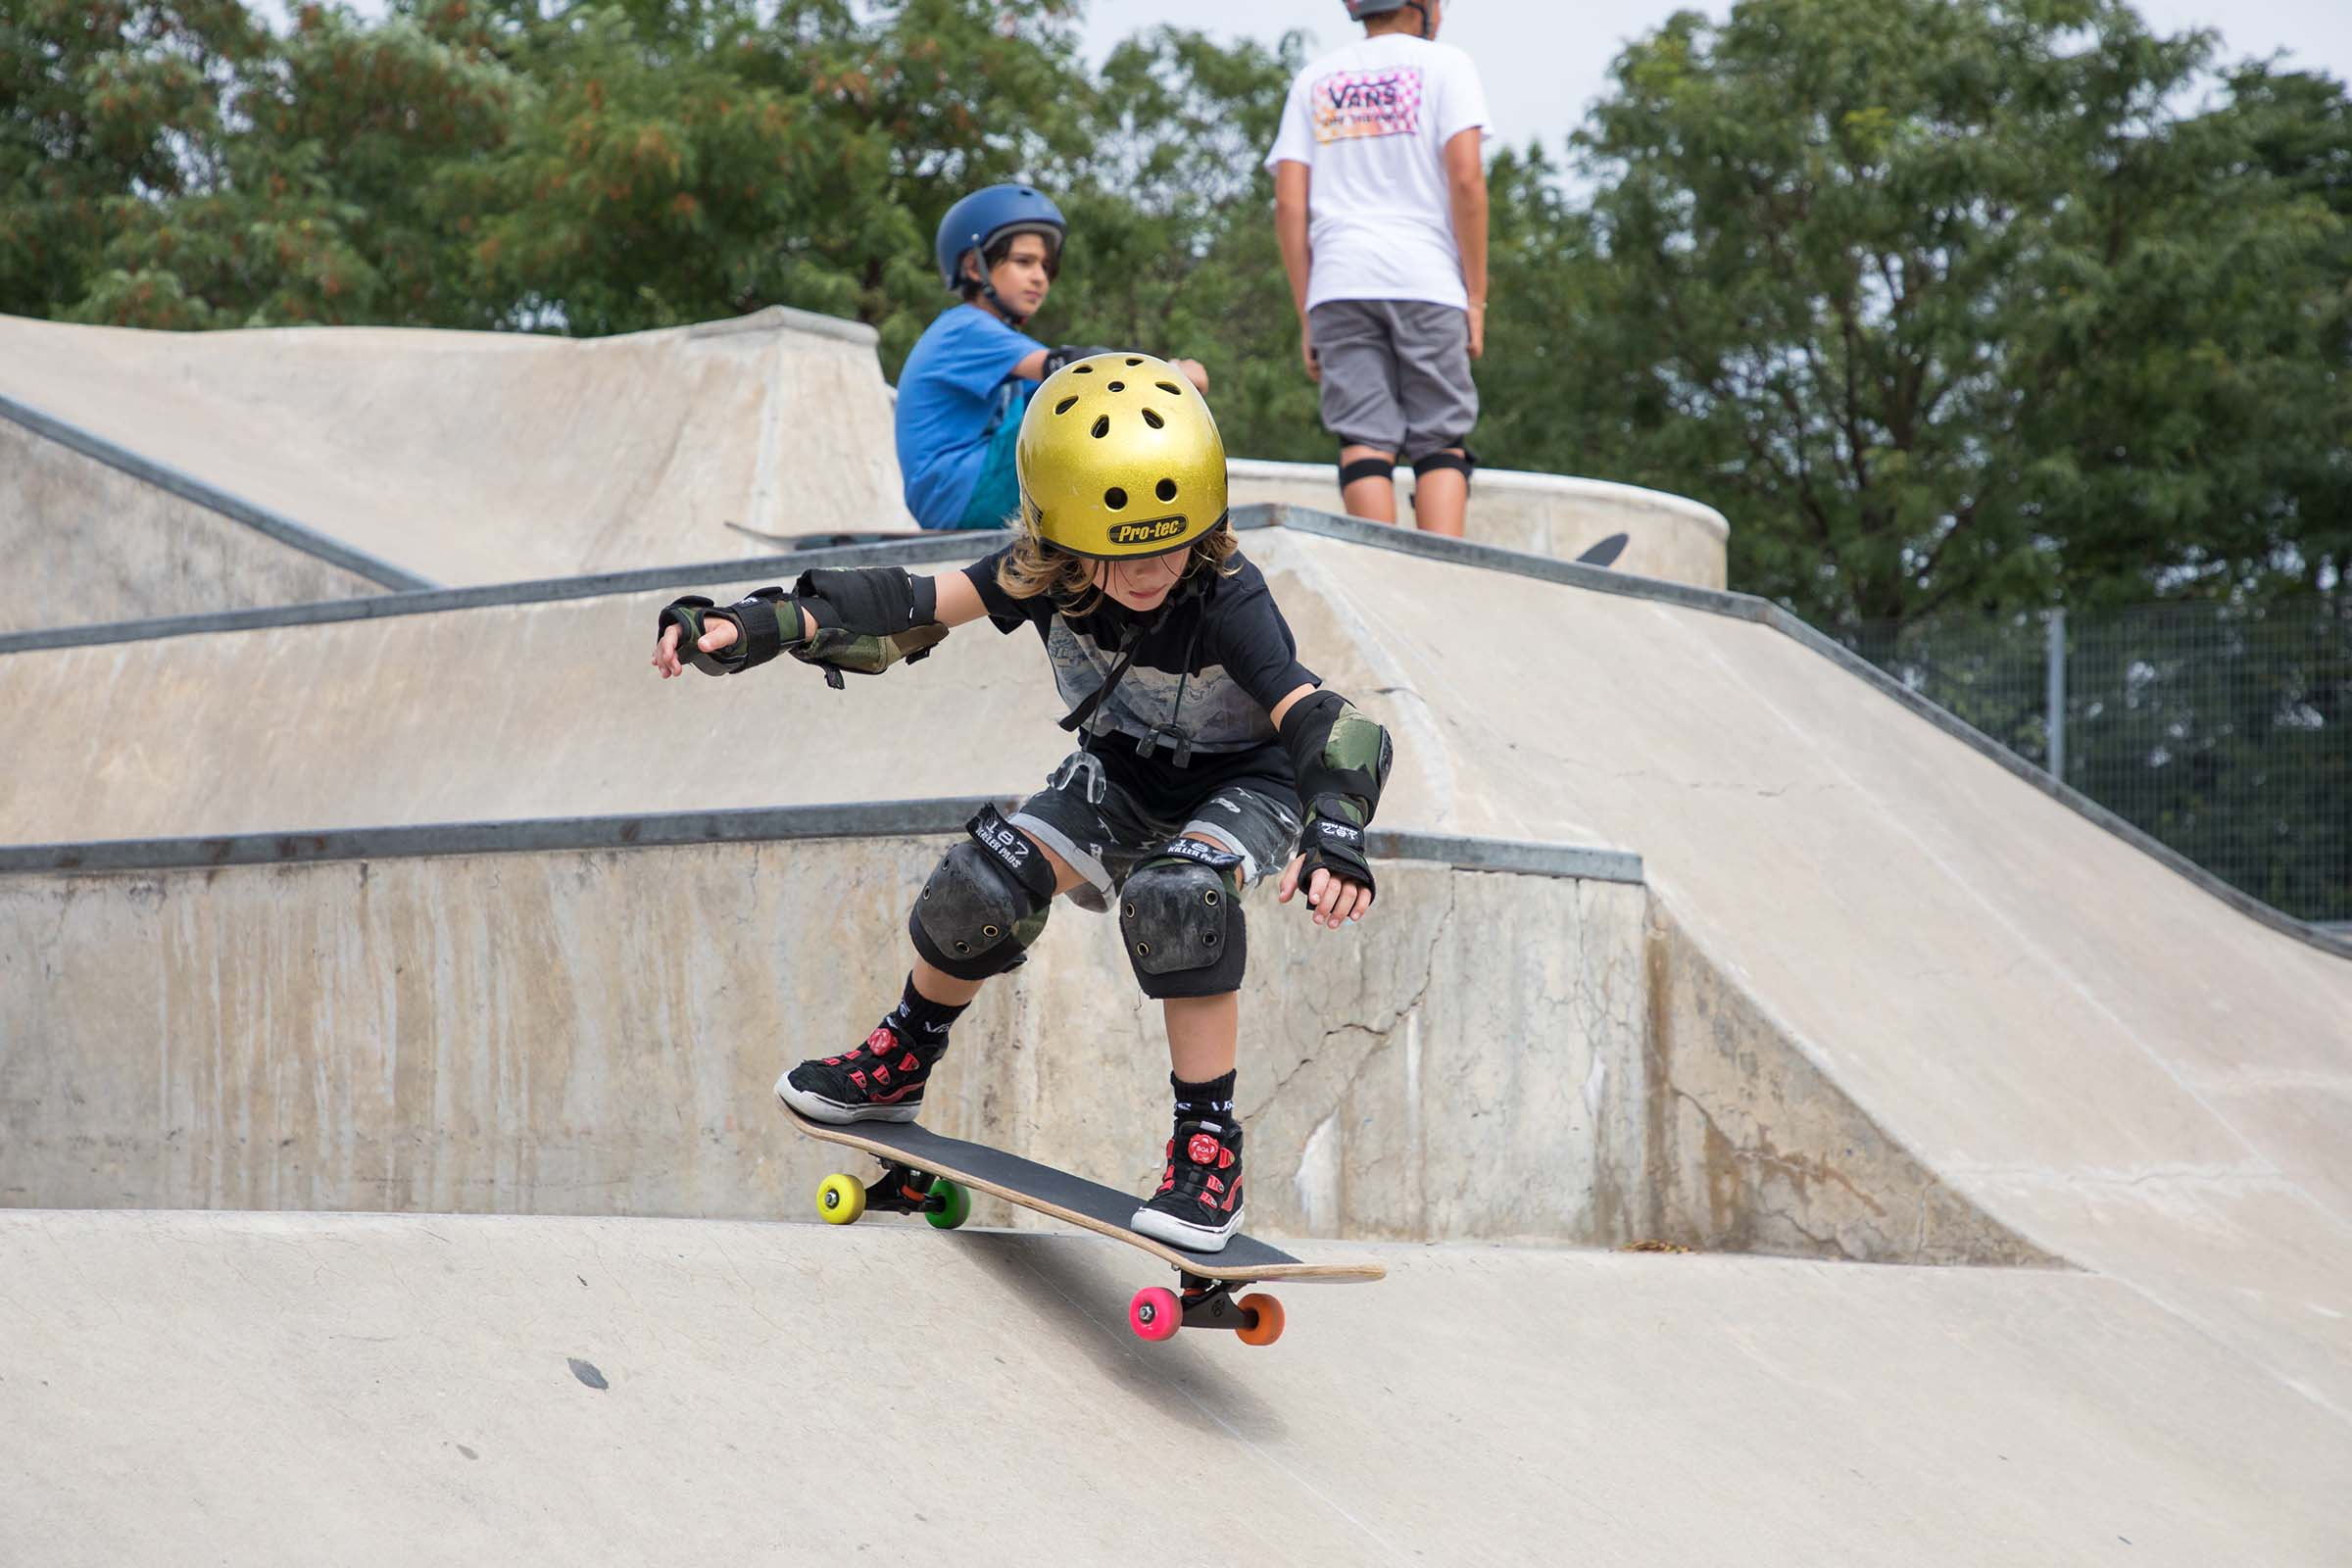 A kid skateboarder in a yellow helmet heads down the incline at Pier 62's Skatepark